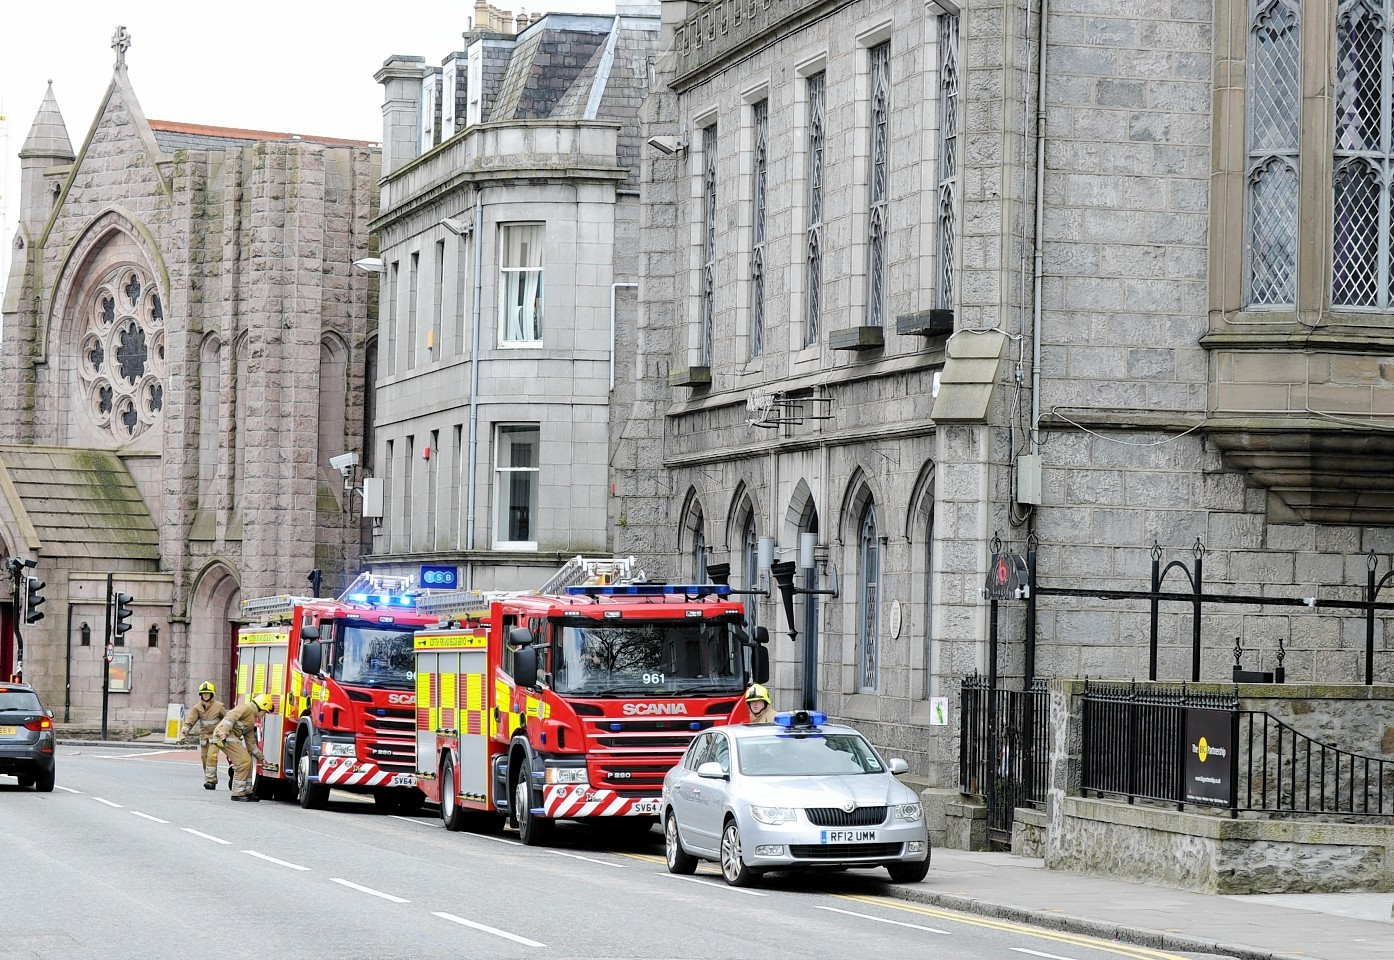 A suspected chemical spill gets the attention of the emergency services. Picture by Colin Rennie